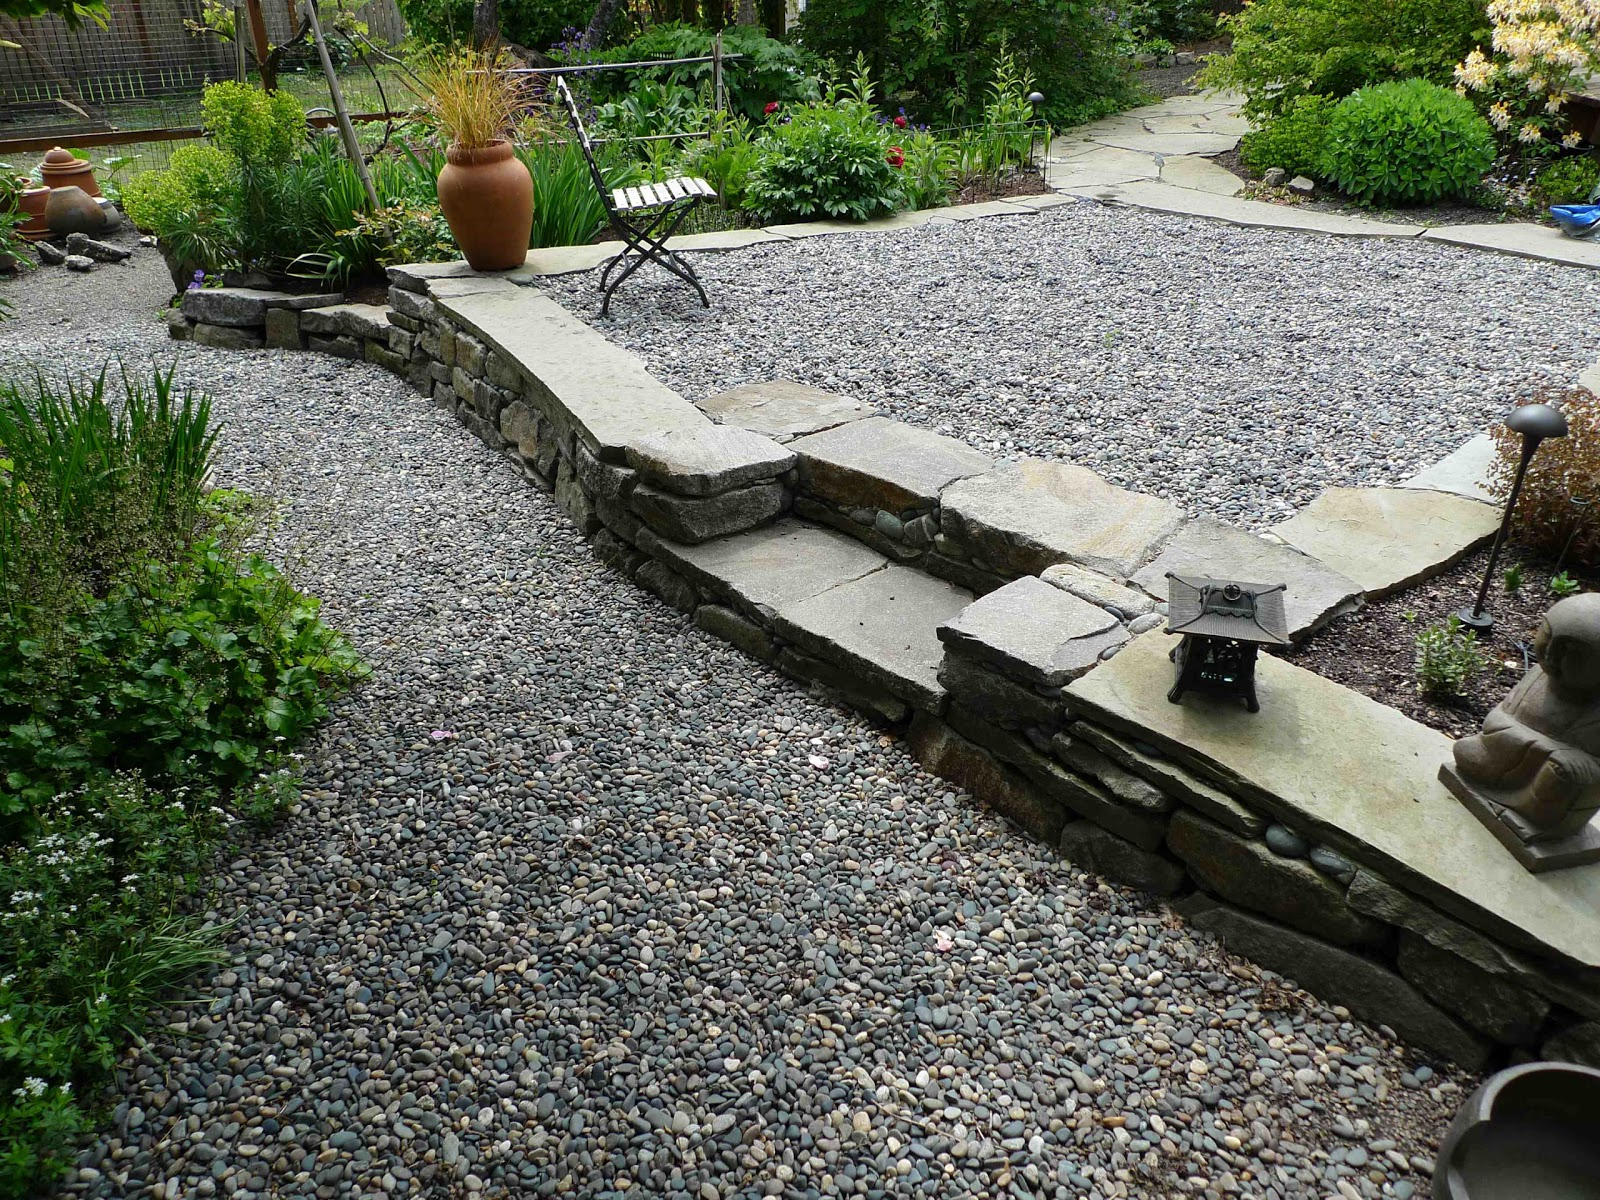 3 4 Quot Crushed Gravel : Jeffrey bale s world of gardens permeability in the garden